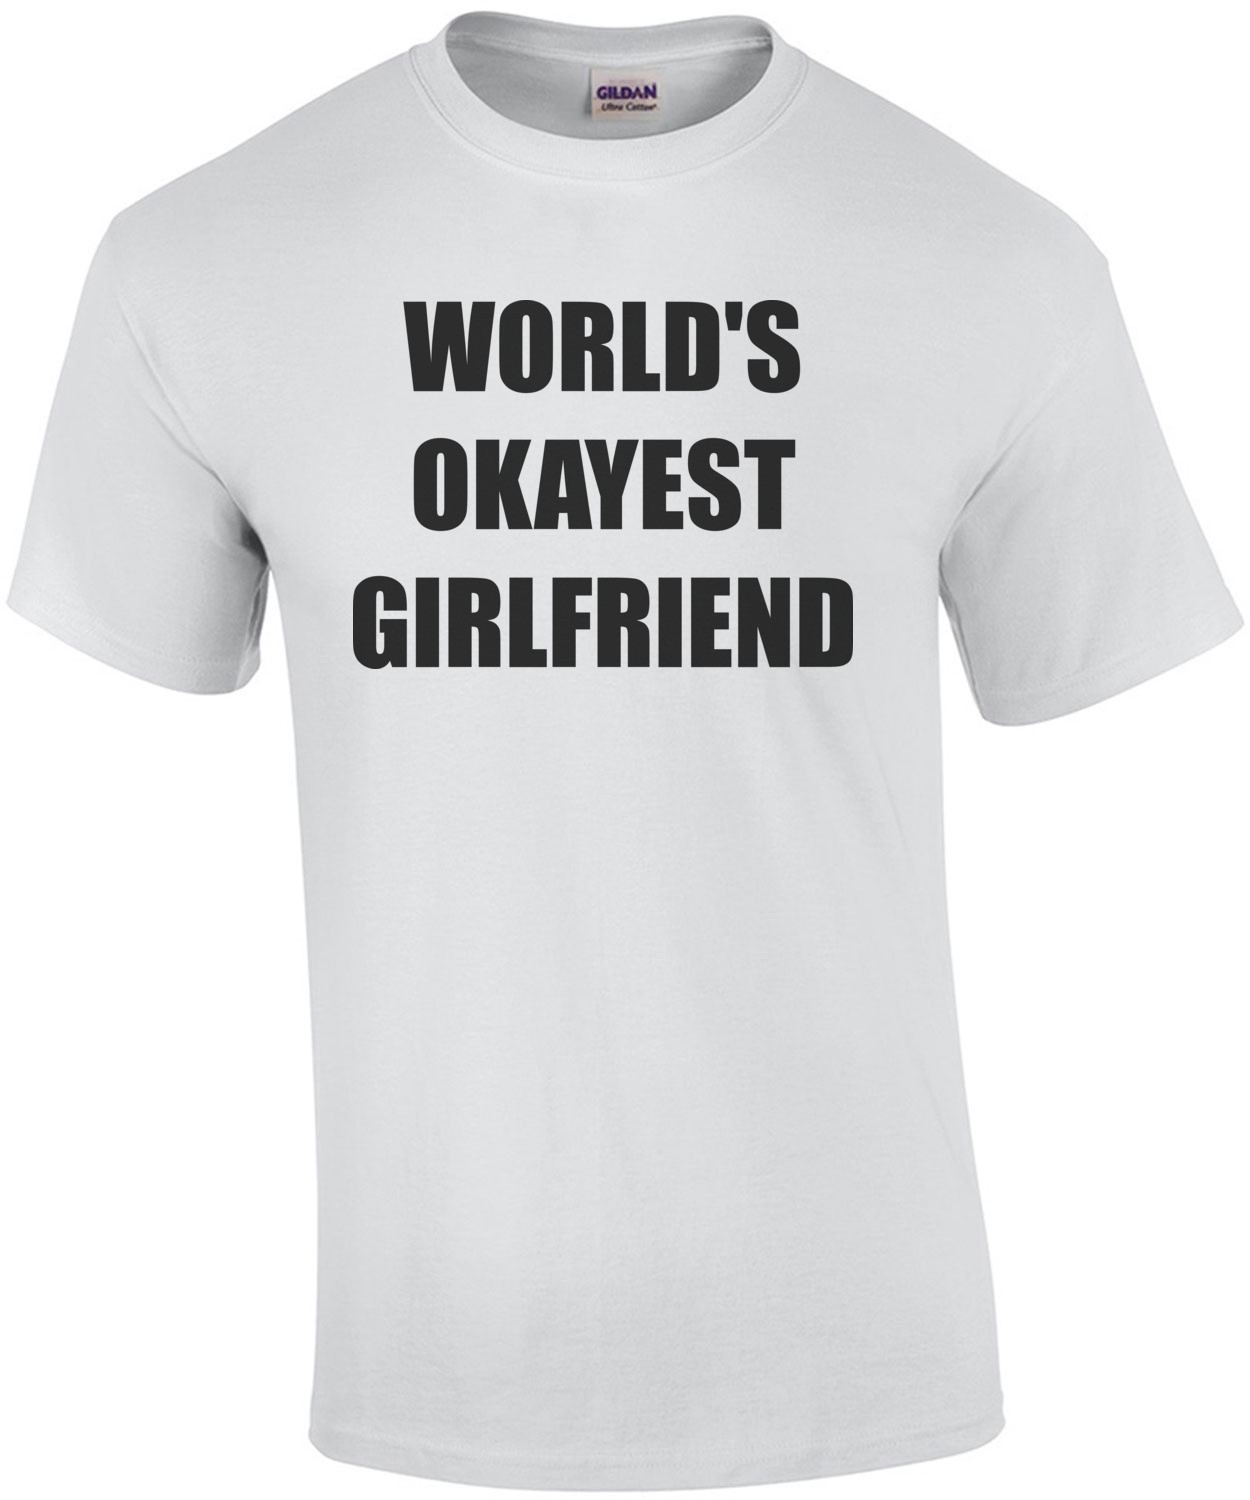 WORLD'S OKAYEST GIRLFRIEND Shirt